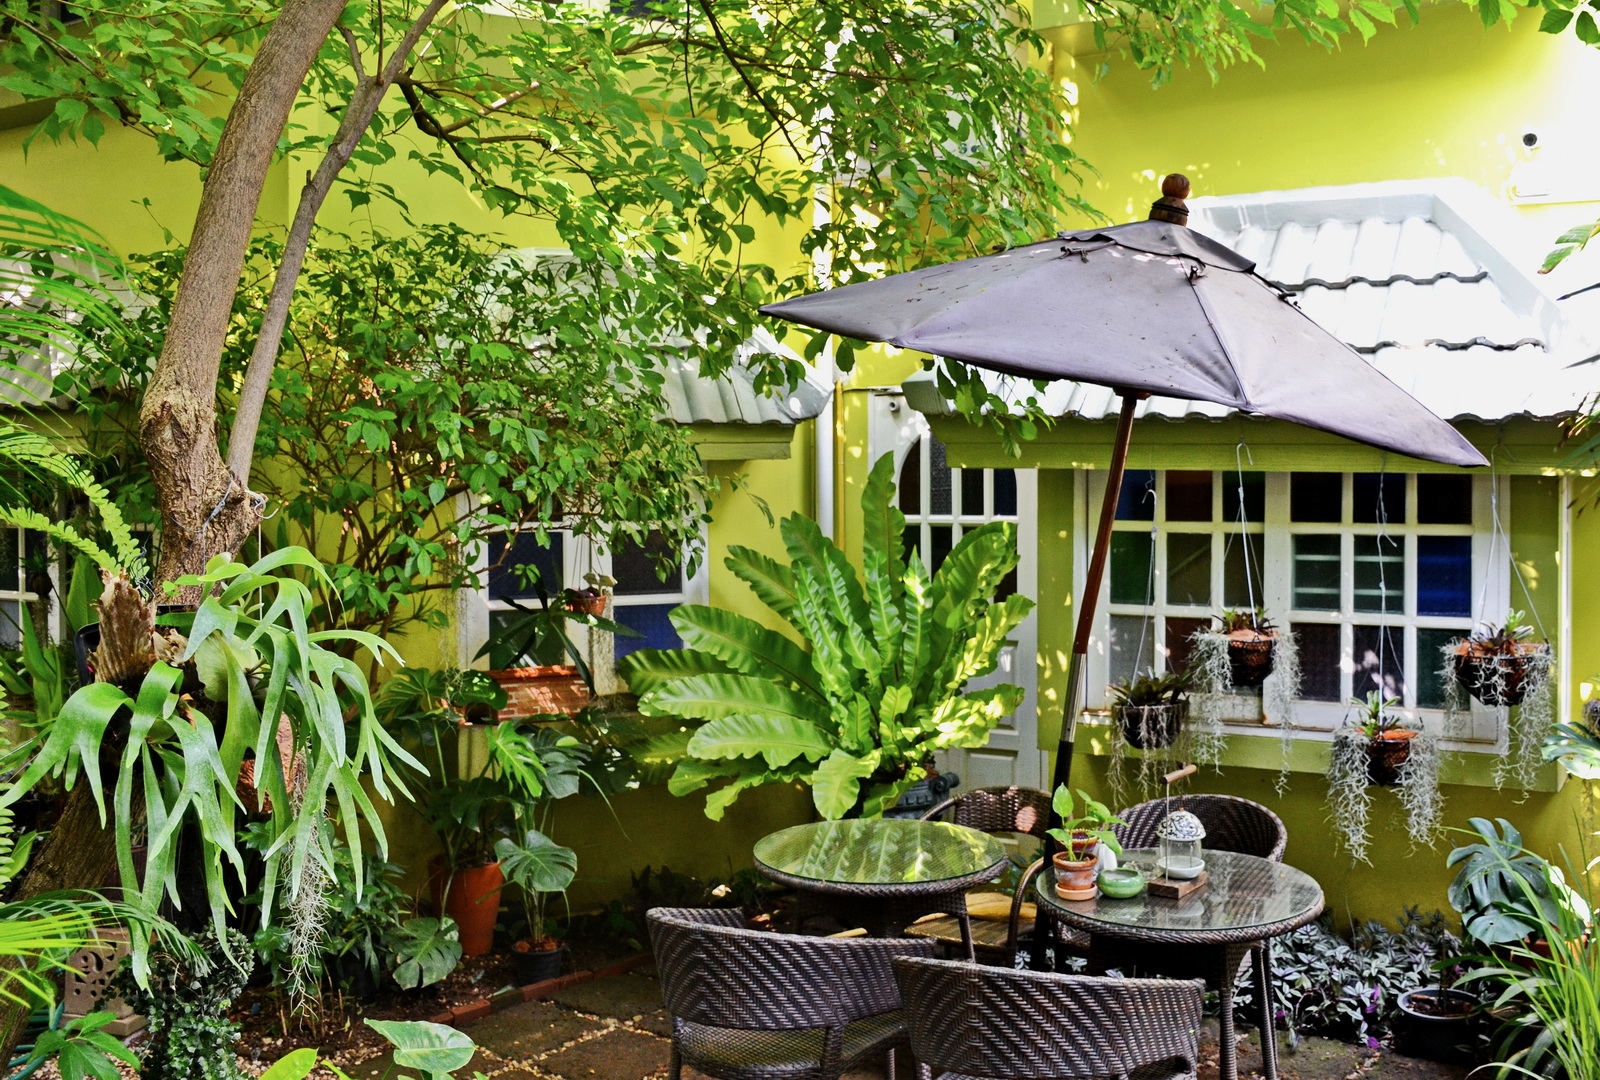 Hidden Thailand Tour accommodation, 20 Lodge, Chiang Mai